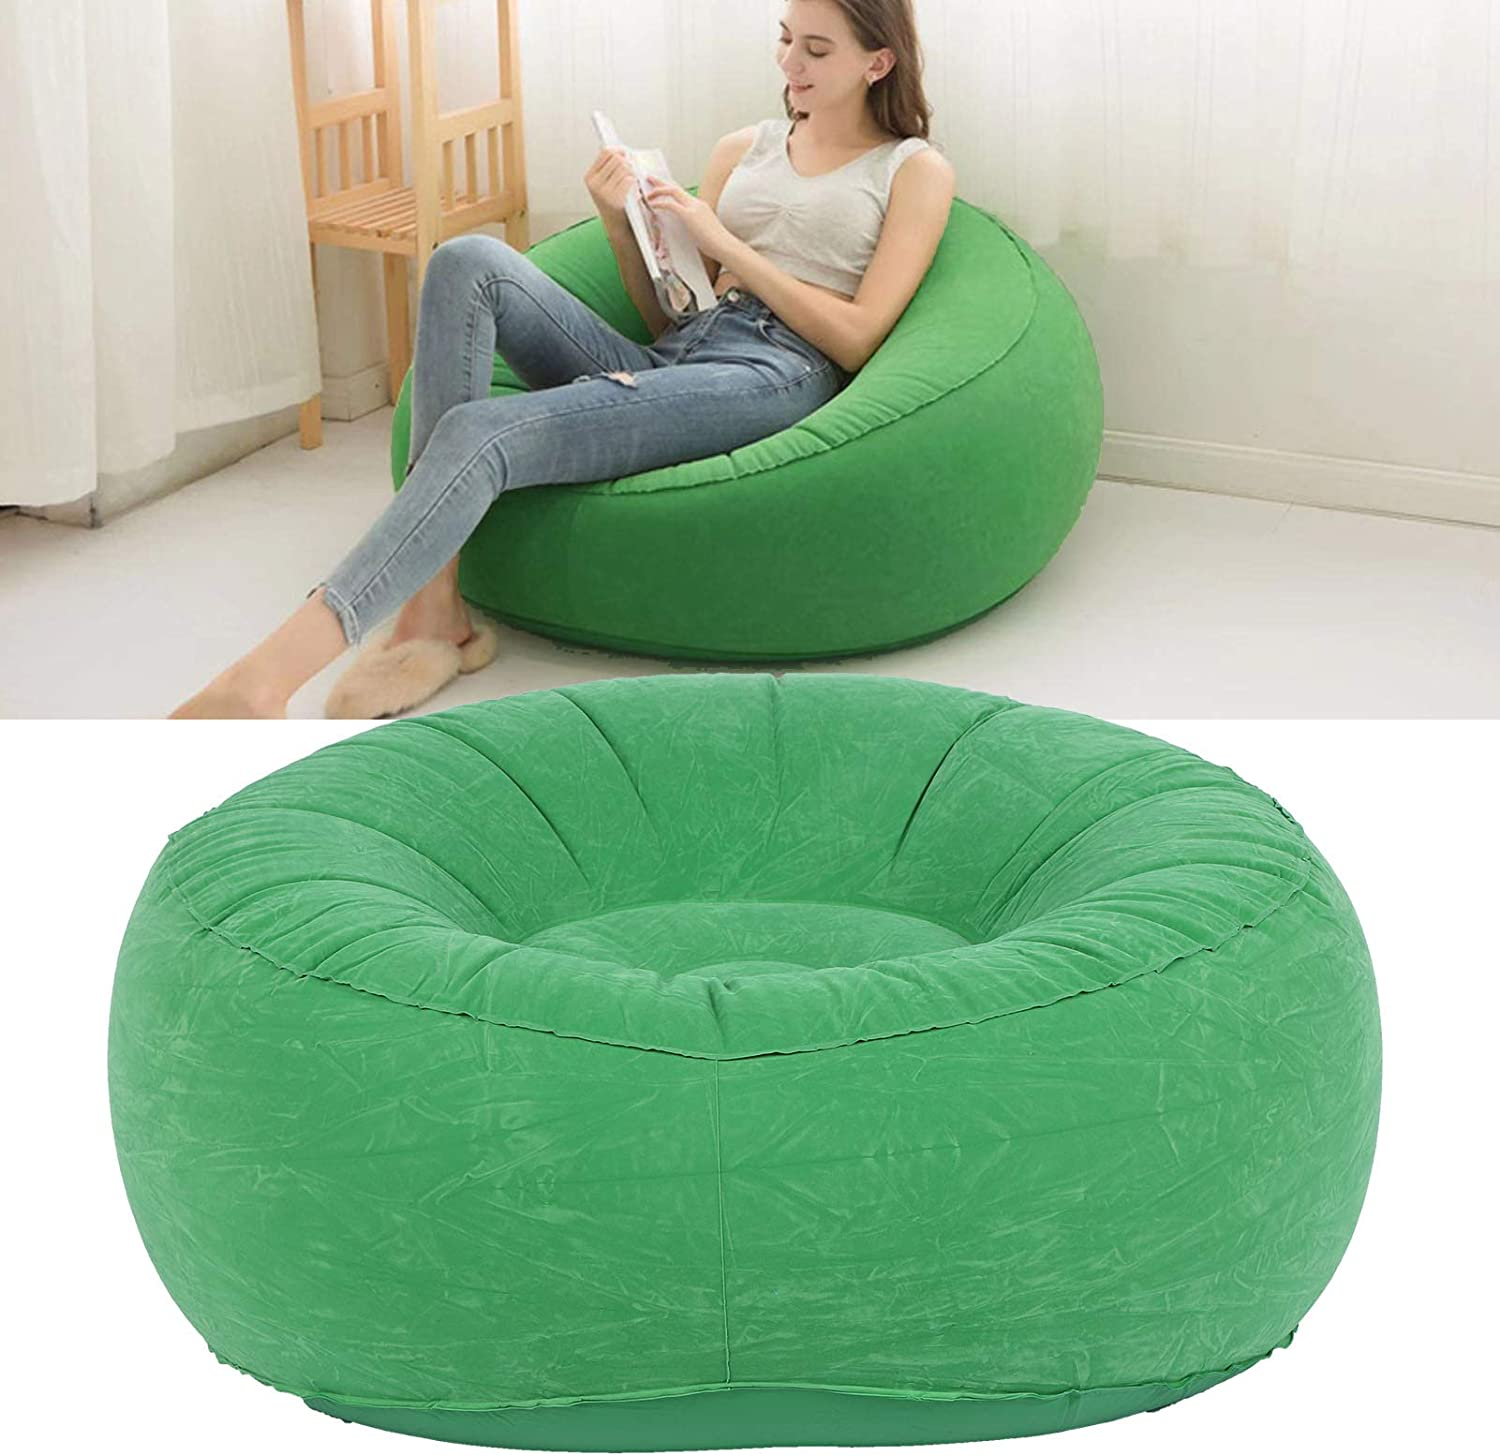 Kudoo Fort Worth Mall Single Sofa Seattle Mall Foldable Home Light Gre Garden for